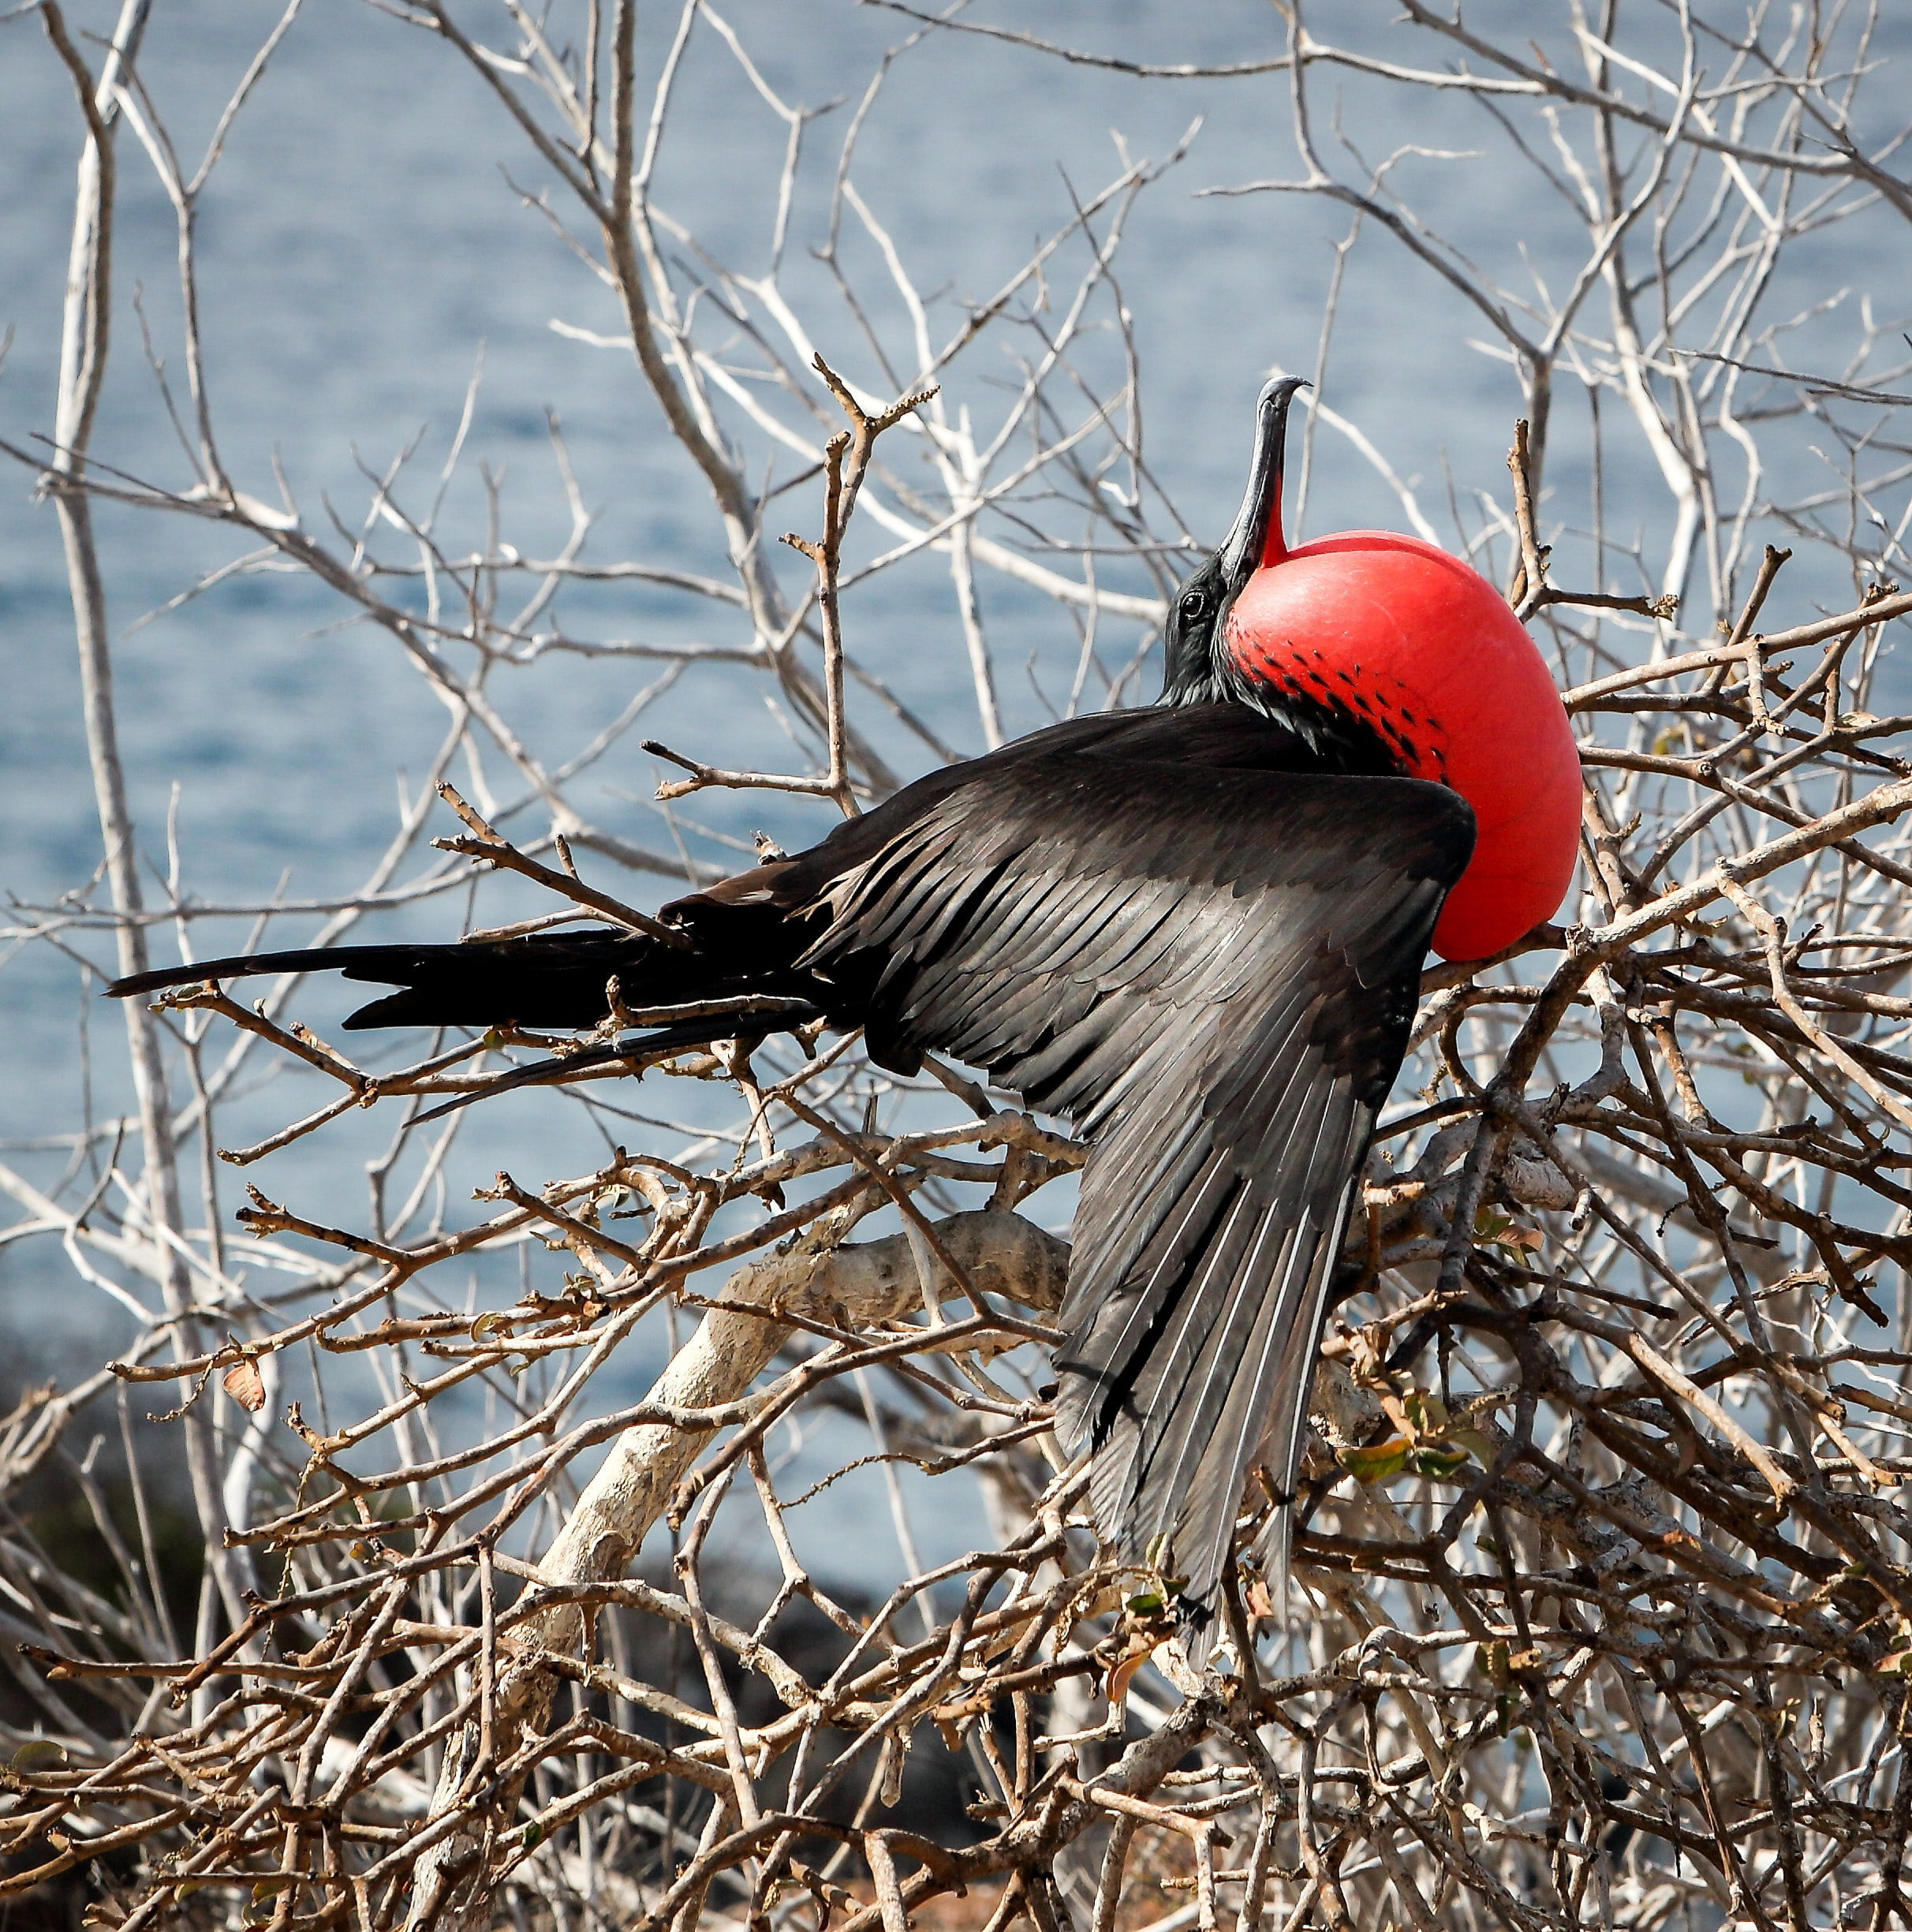 black and red bird on tree branch